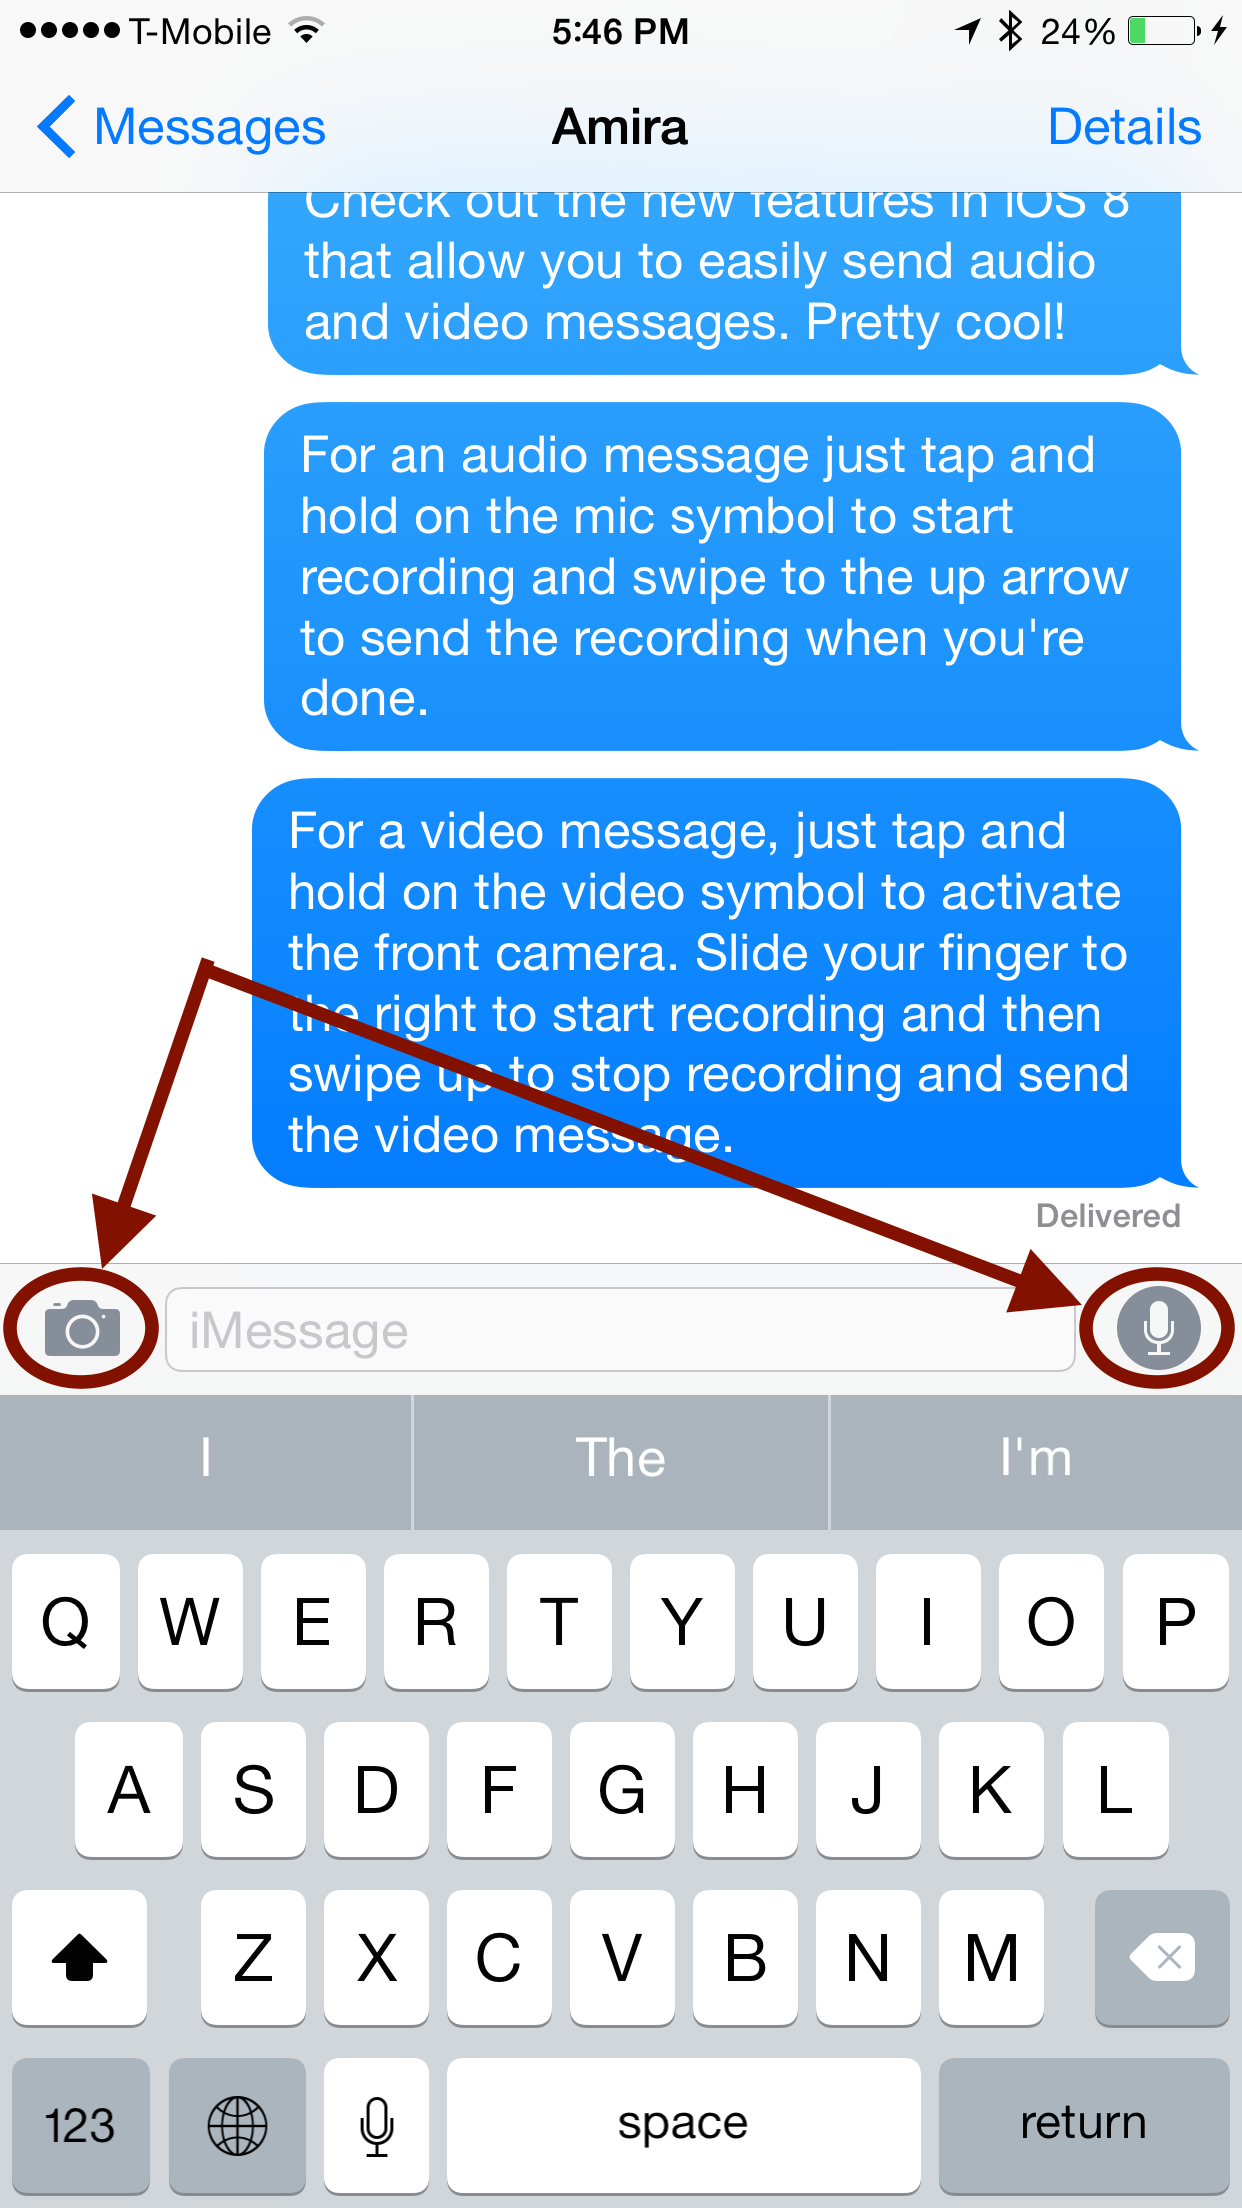 This Is An Amazing Way To Quickly Send Audio And Video Messages From Your Iphone Or Ipad Check It Out Messaging App Messages App